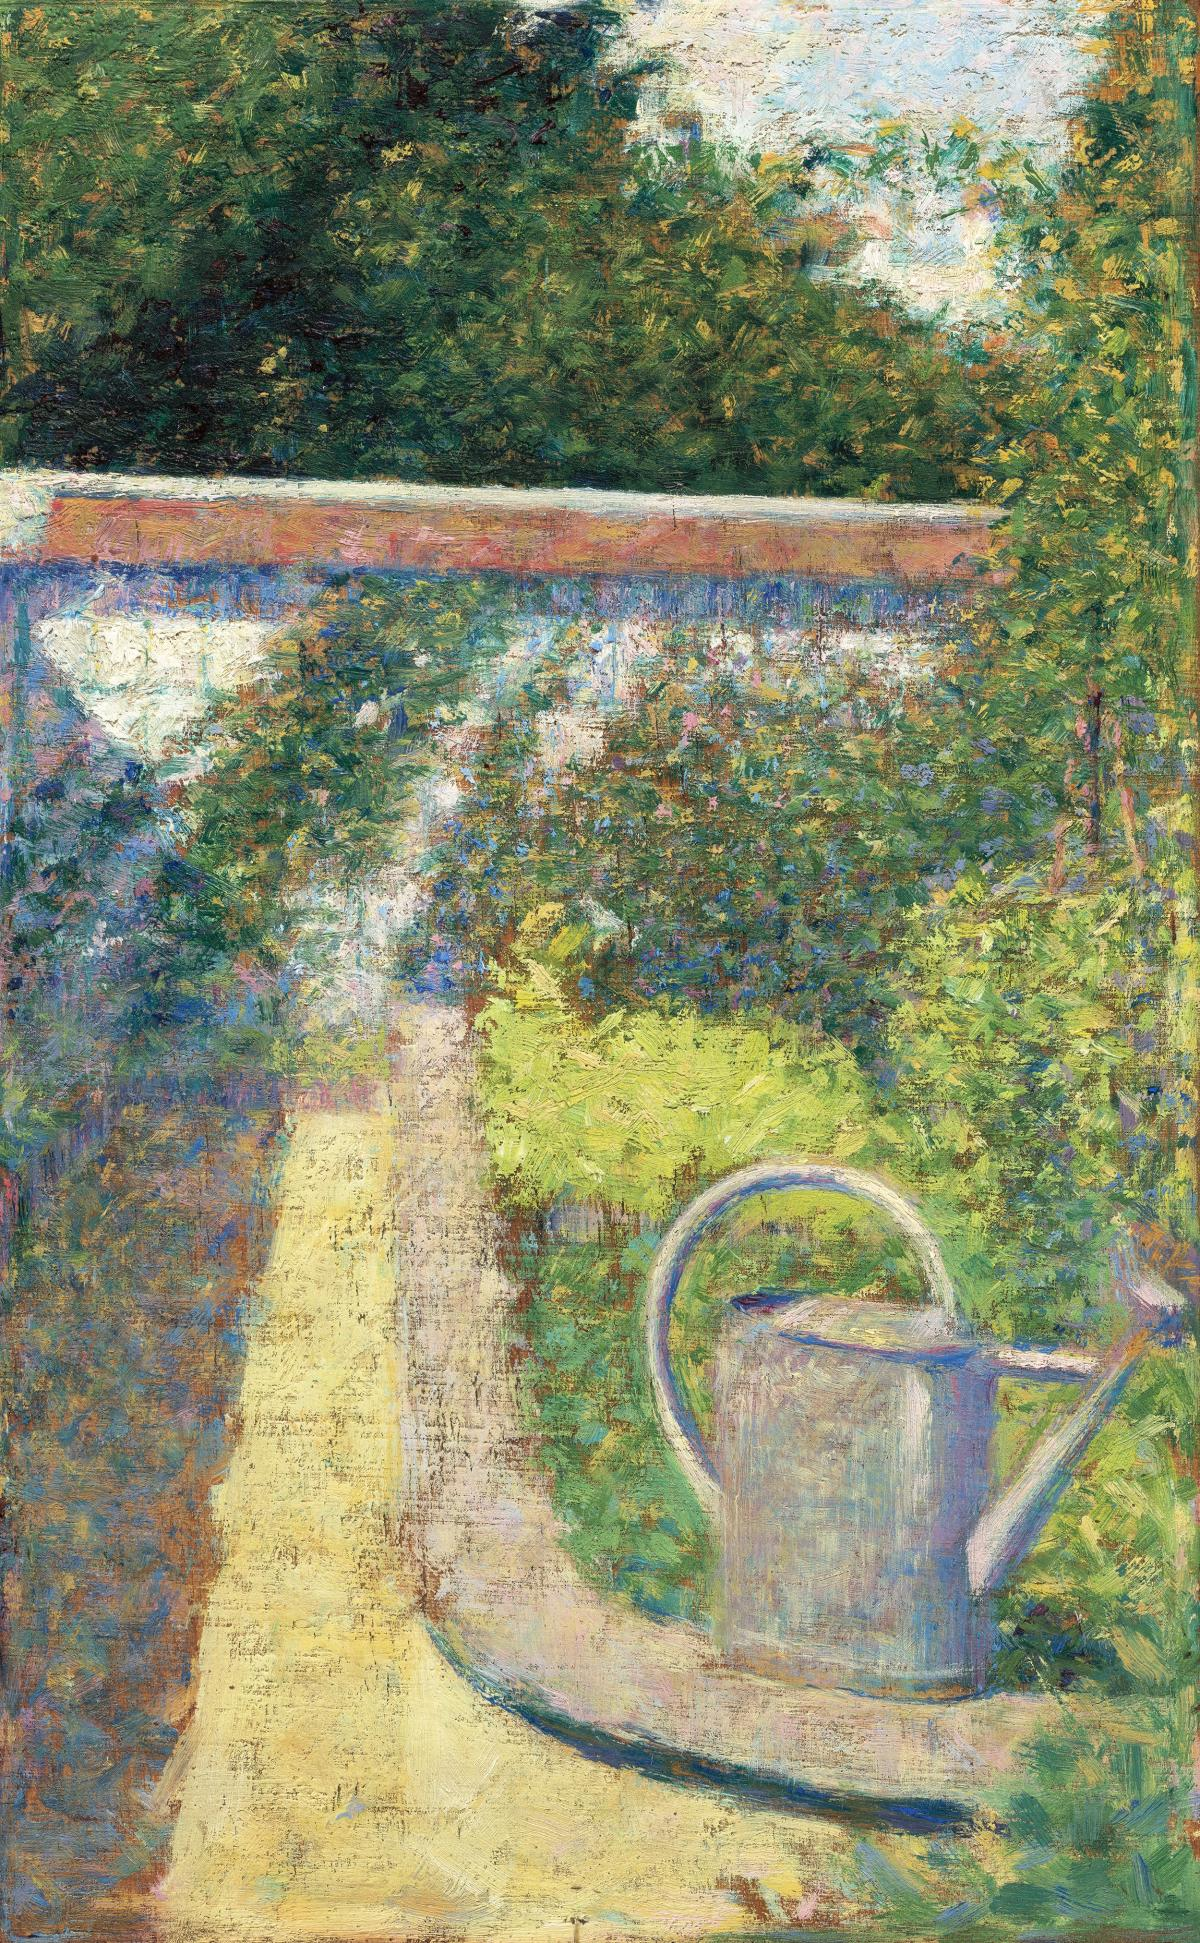 The Watering Can–Garden at Le Raincy (ca. 1883) by Georges Seurat. Original from The National Gallery of Art.